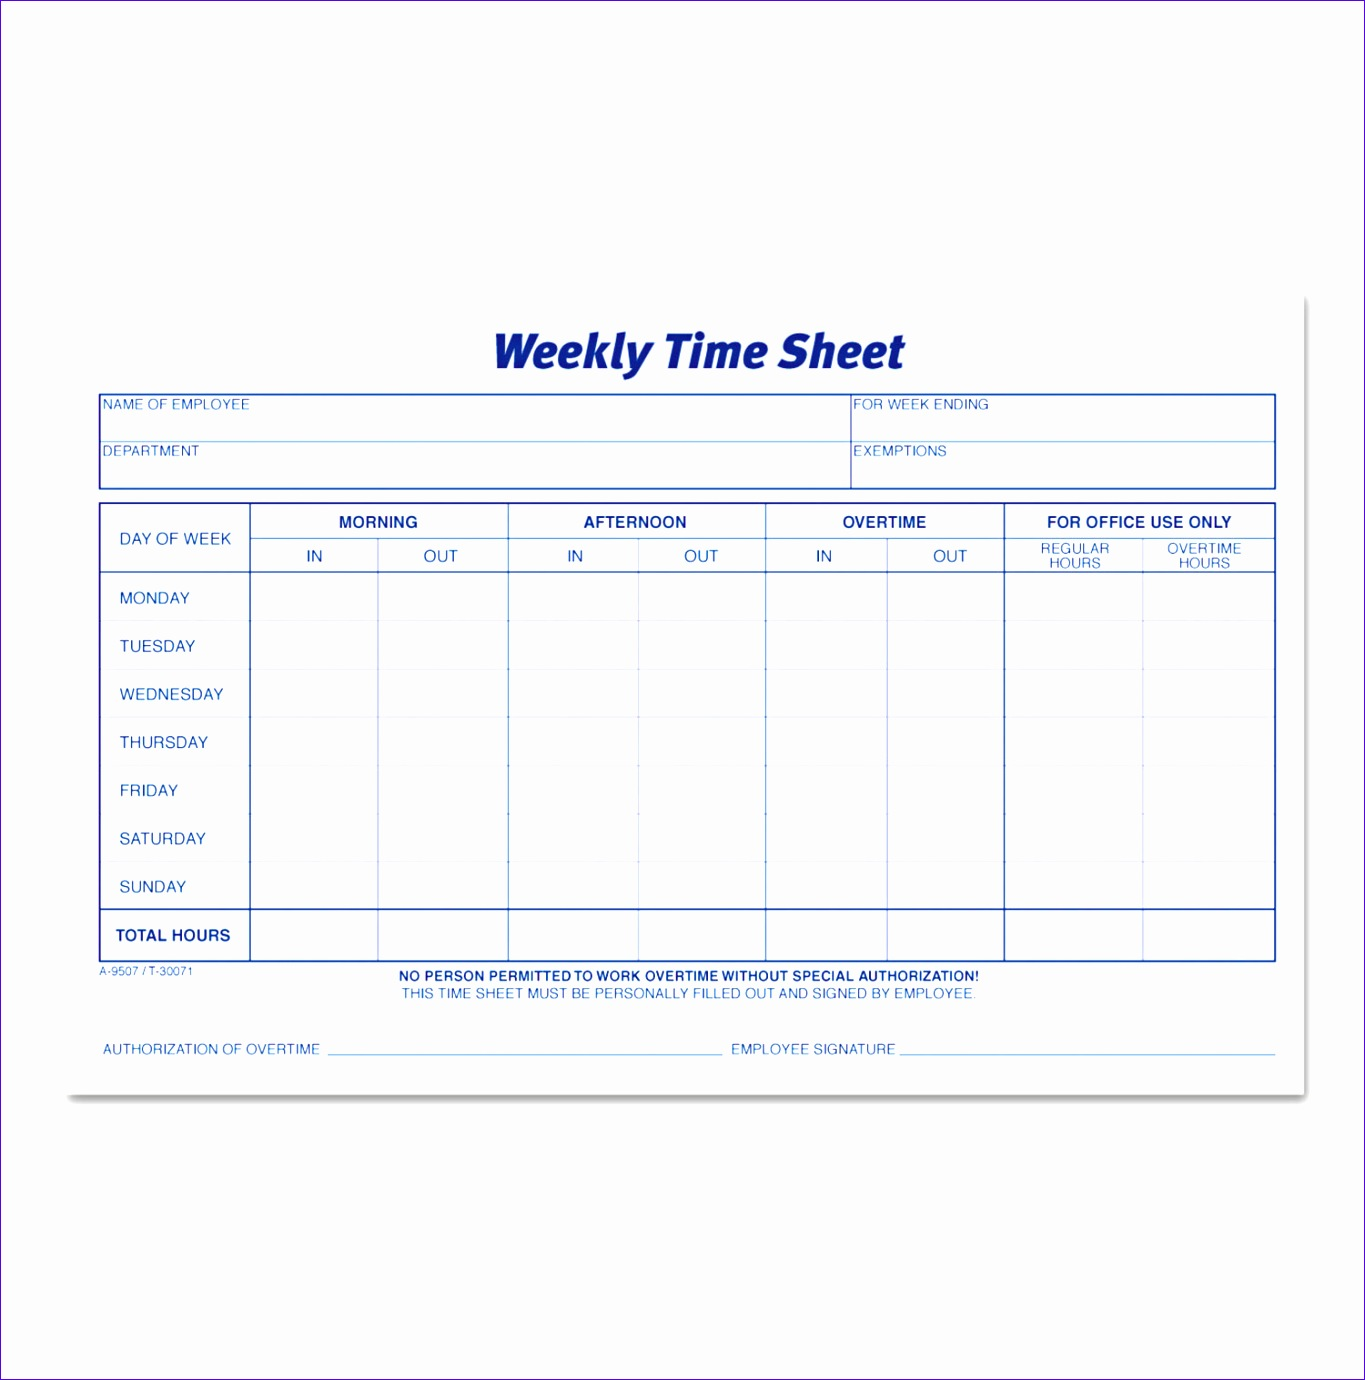 Employee Time Card Tnxrx Elegant Weekly Time Sheets by tops™ top Timesupplies